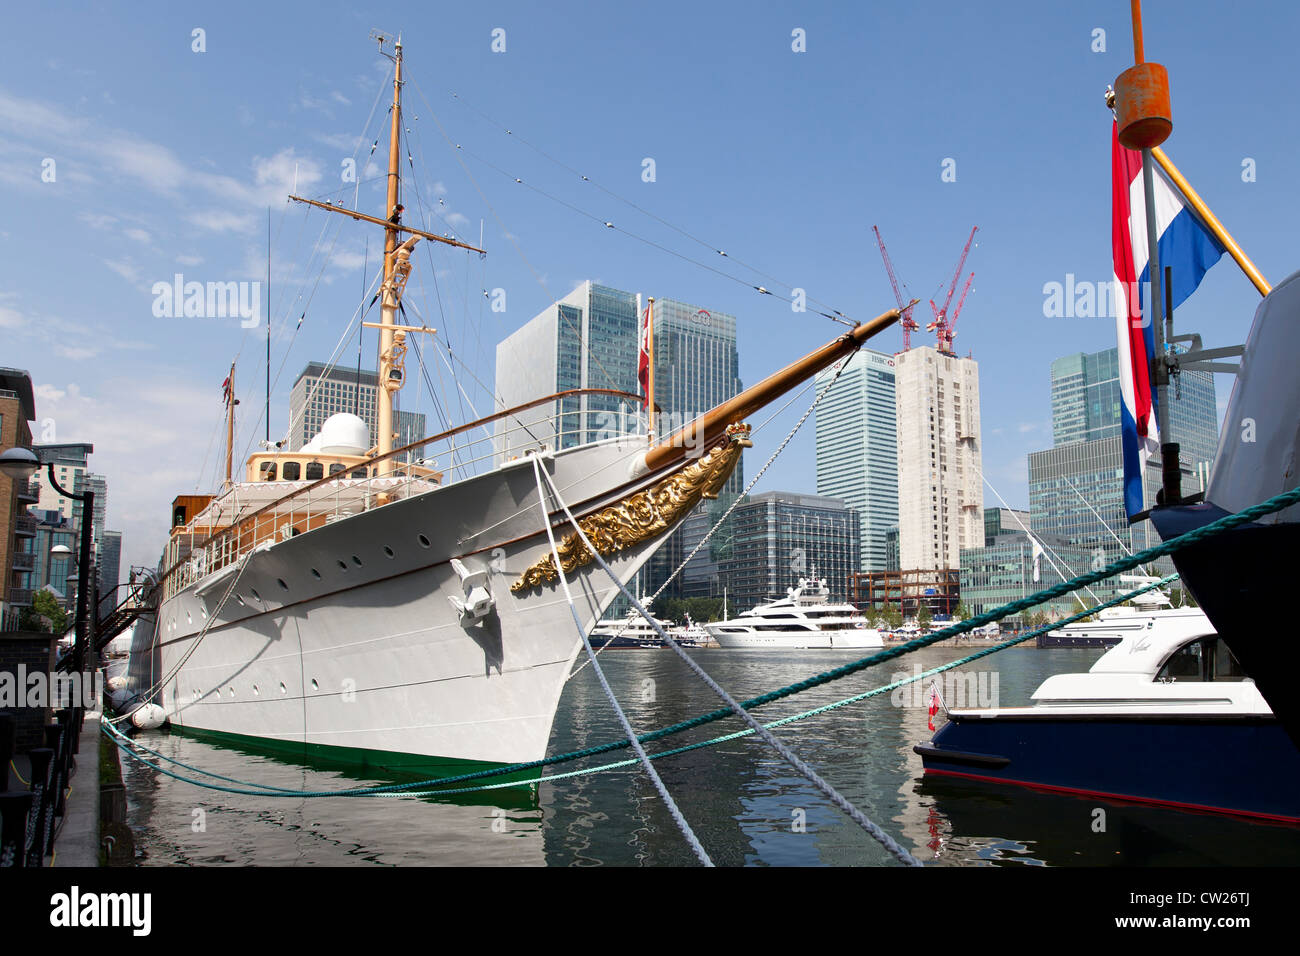 Royal Yacht Dannebrog, moored at Canary Wharf during the 2012 Summer Olympics in London - Stock Image